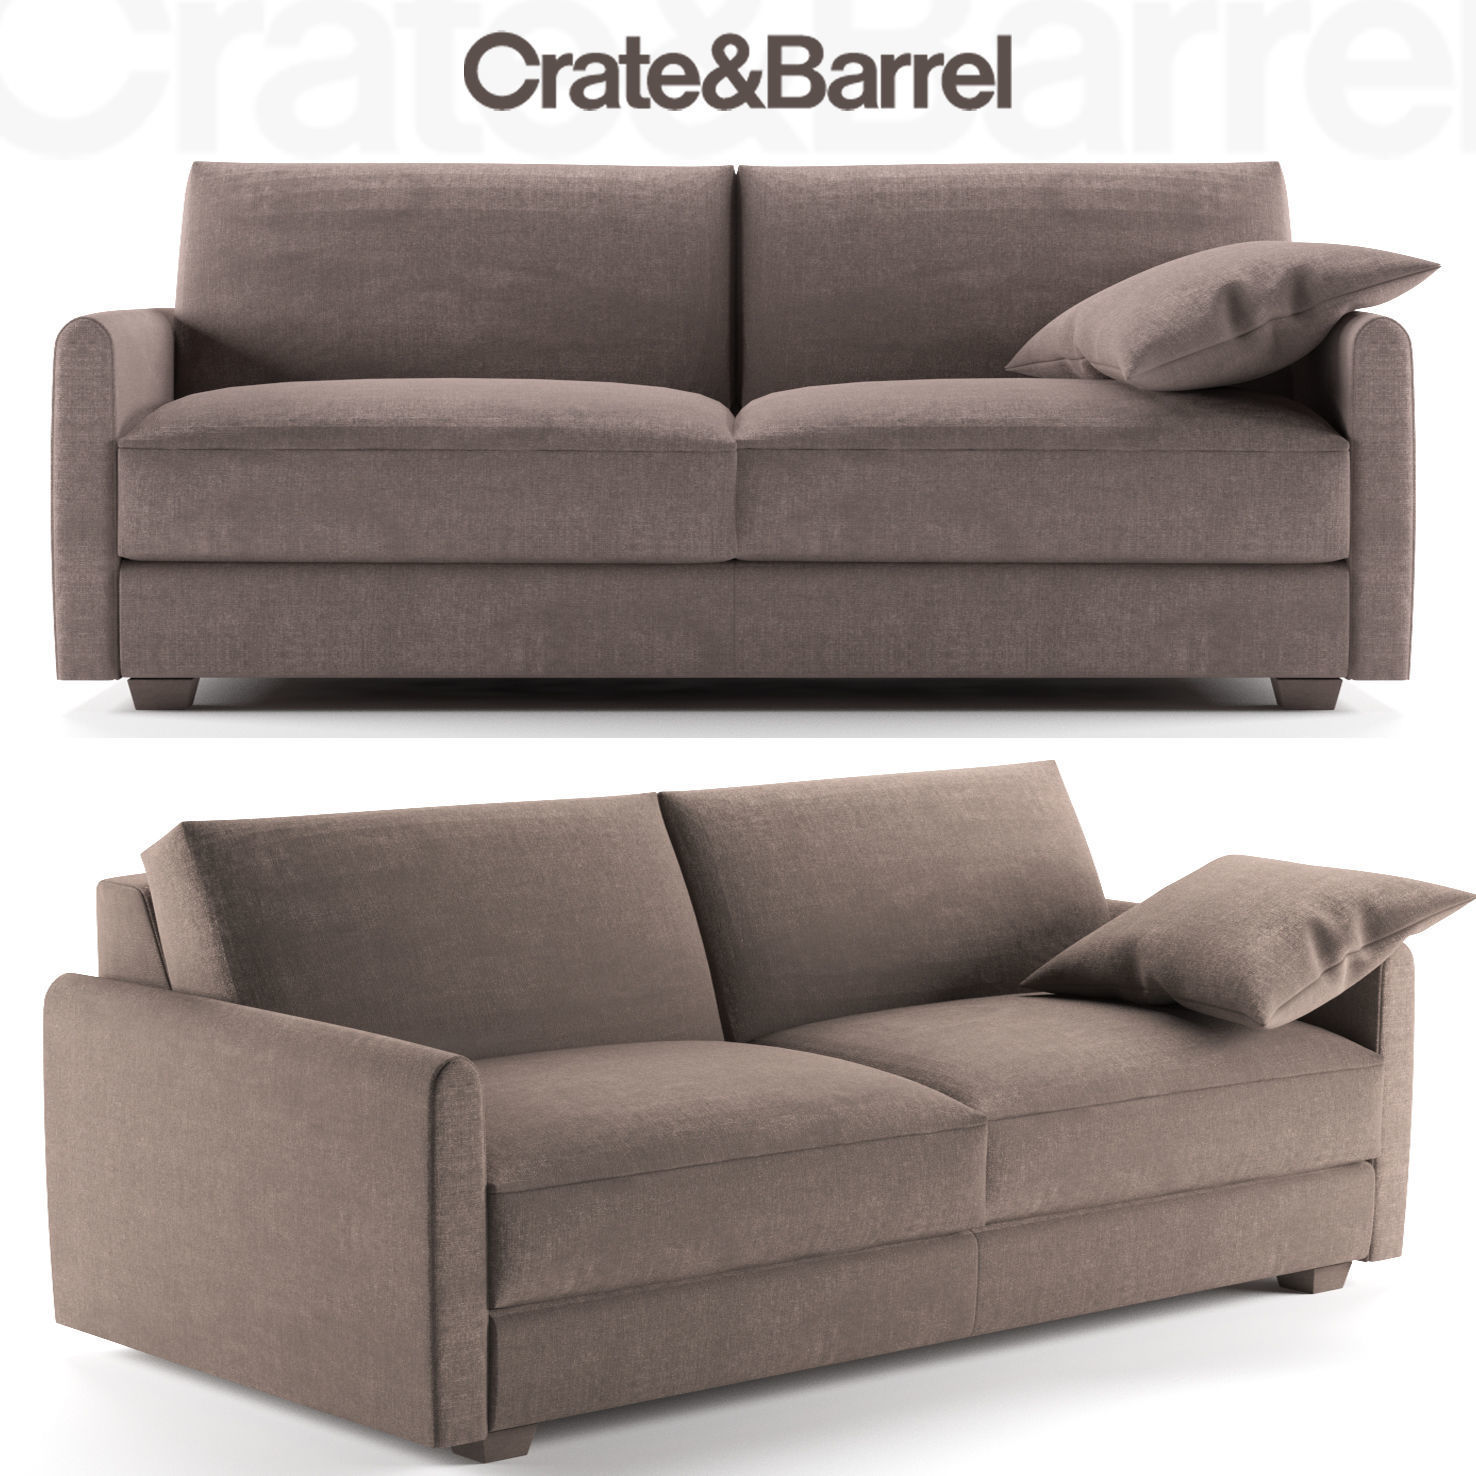 Fullsize Of Crate And Barrel Sofas